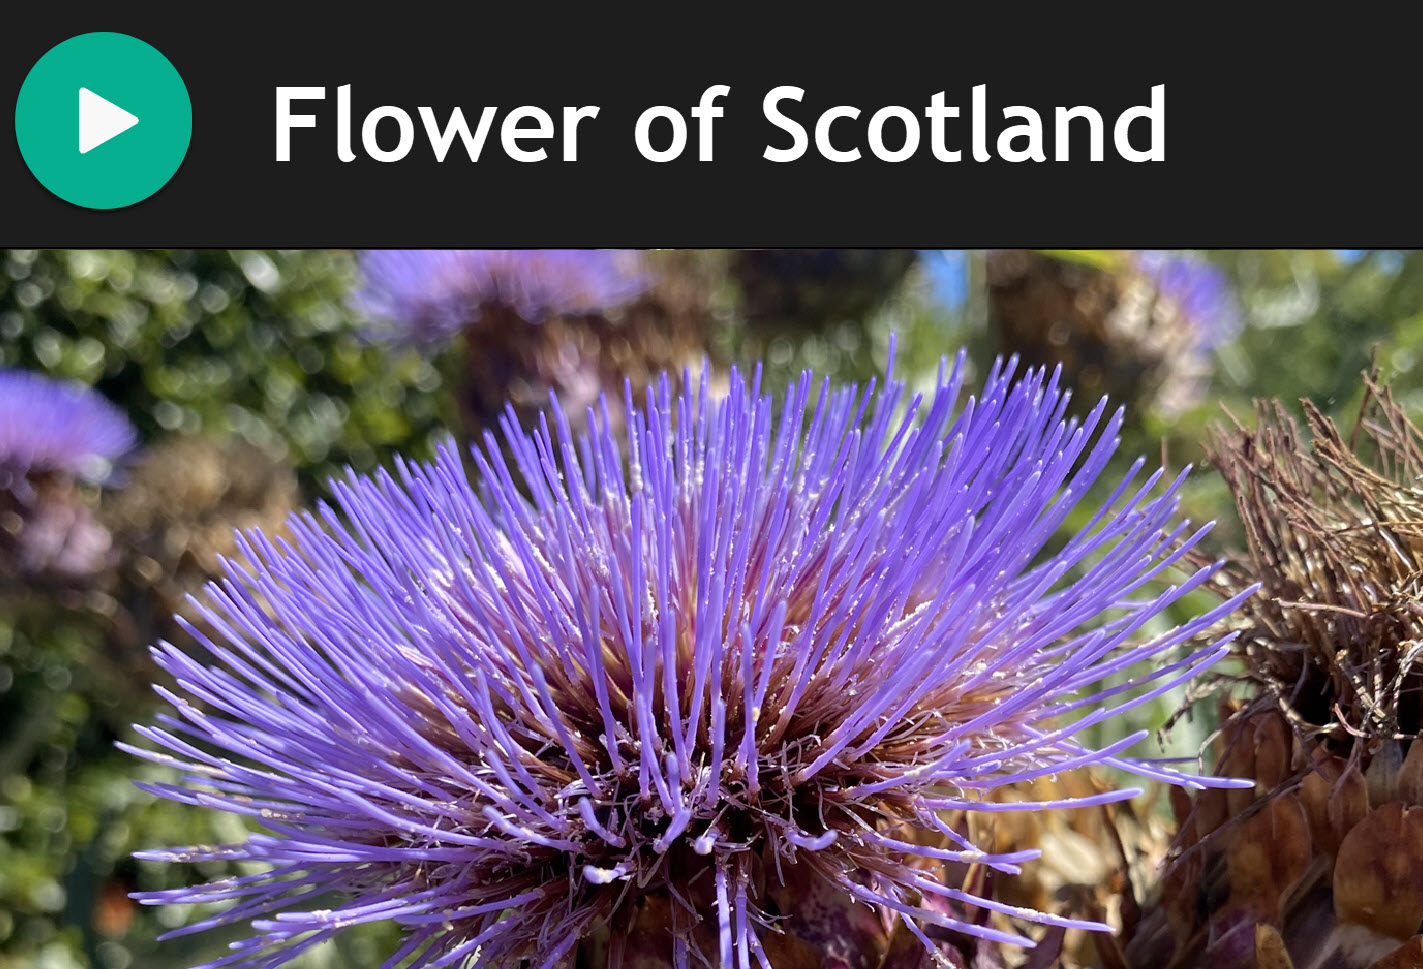 Flower of Scotland for Bagpipes